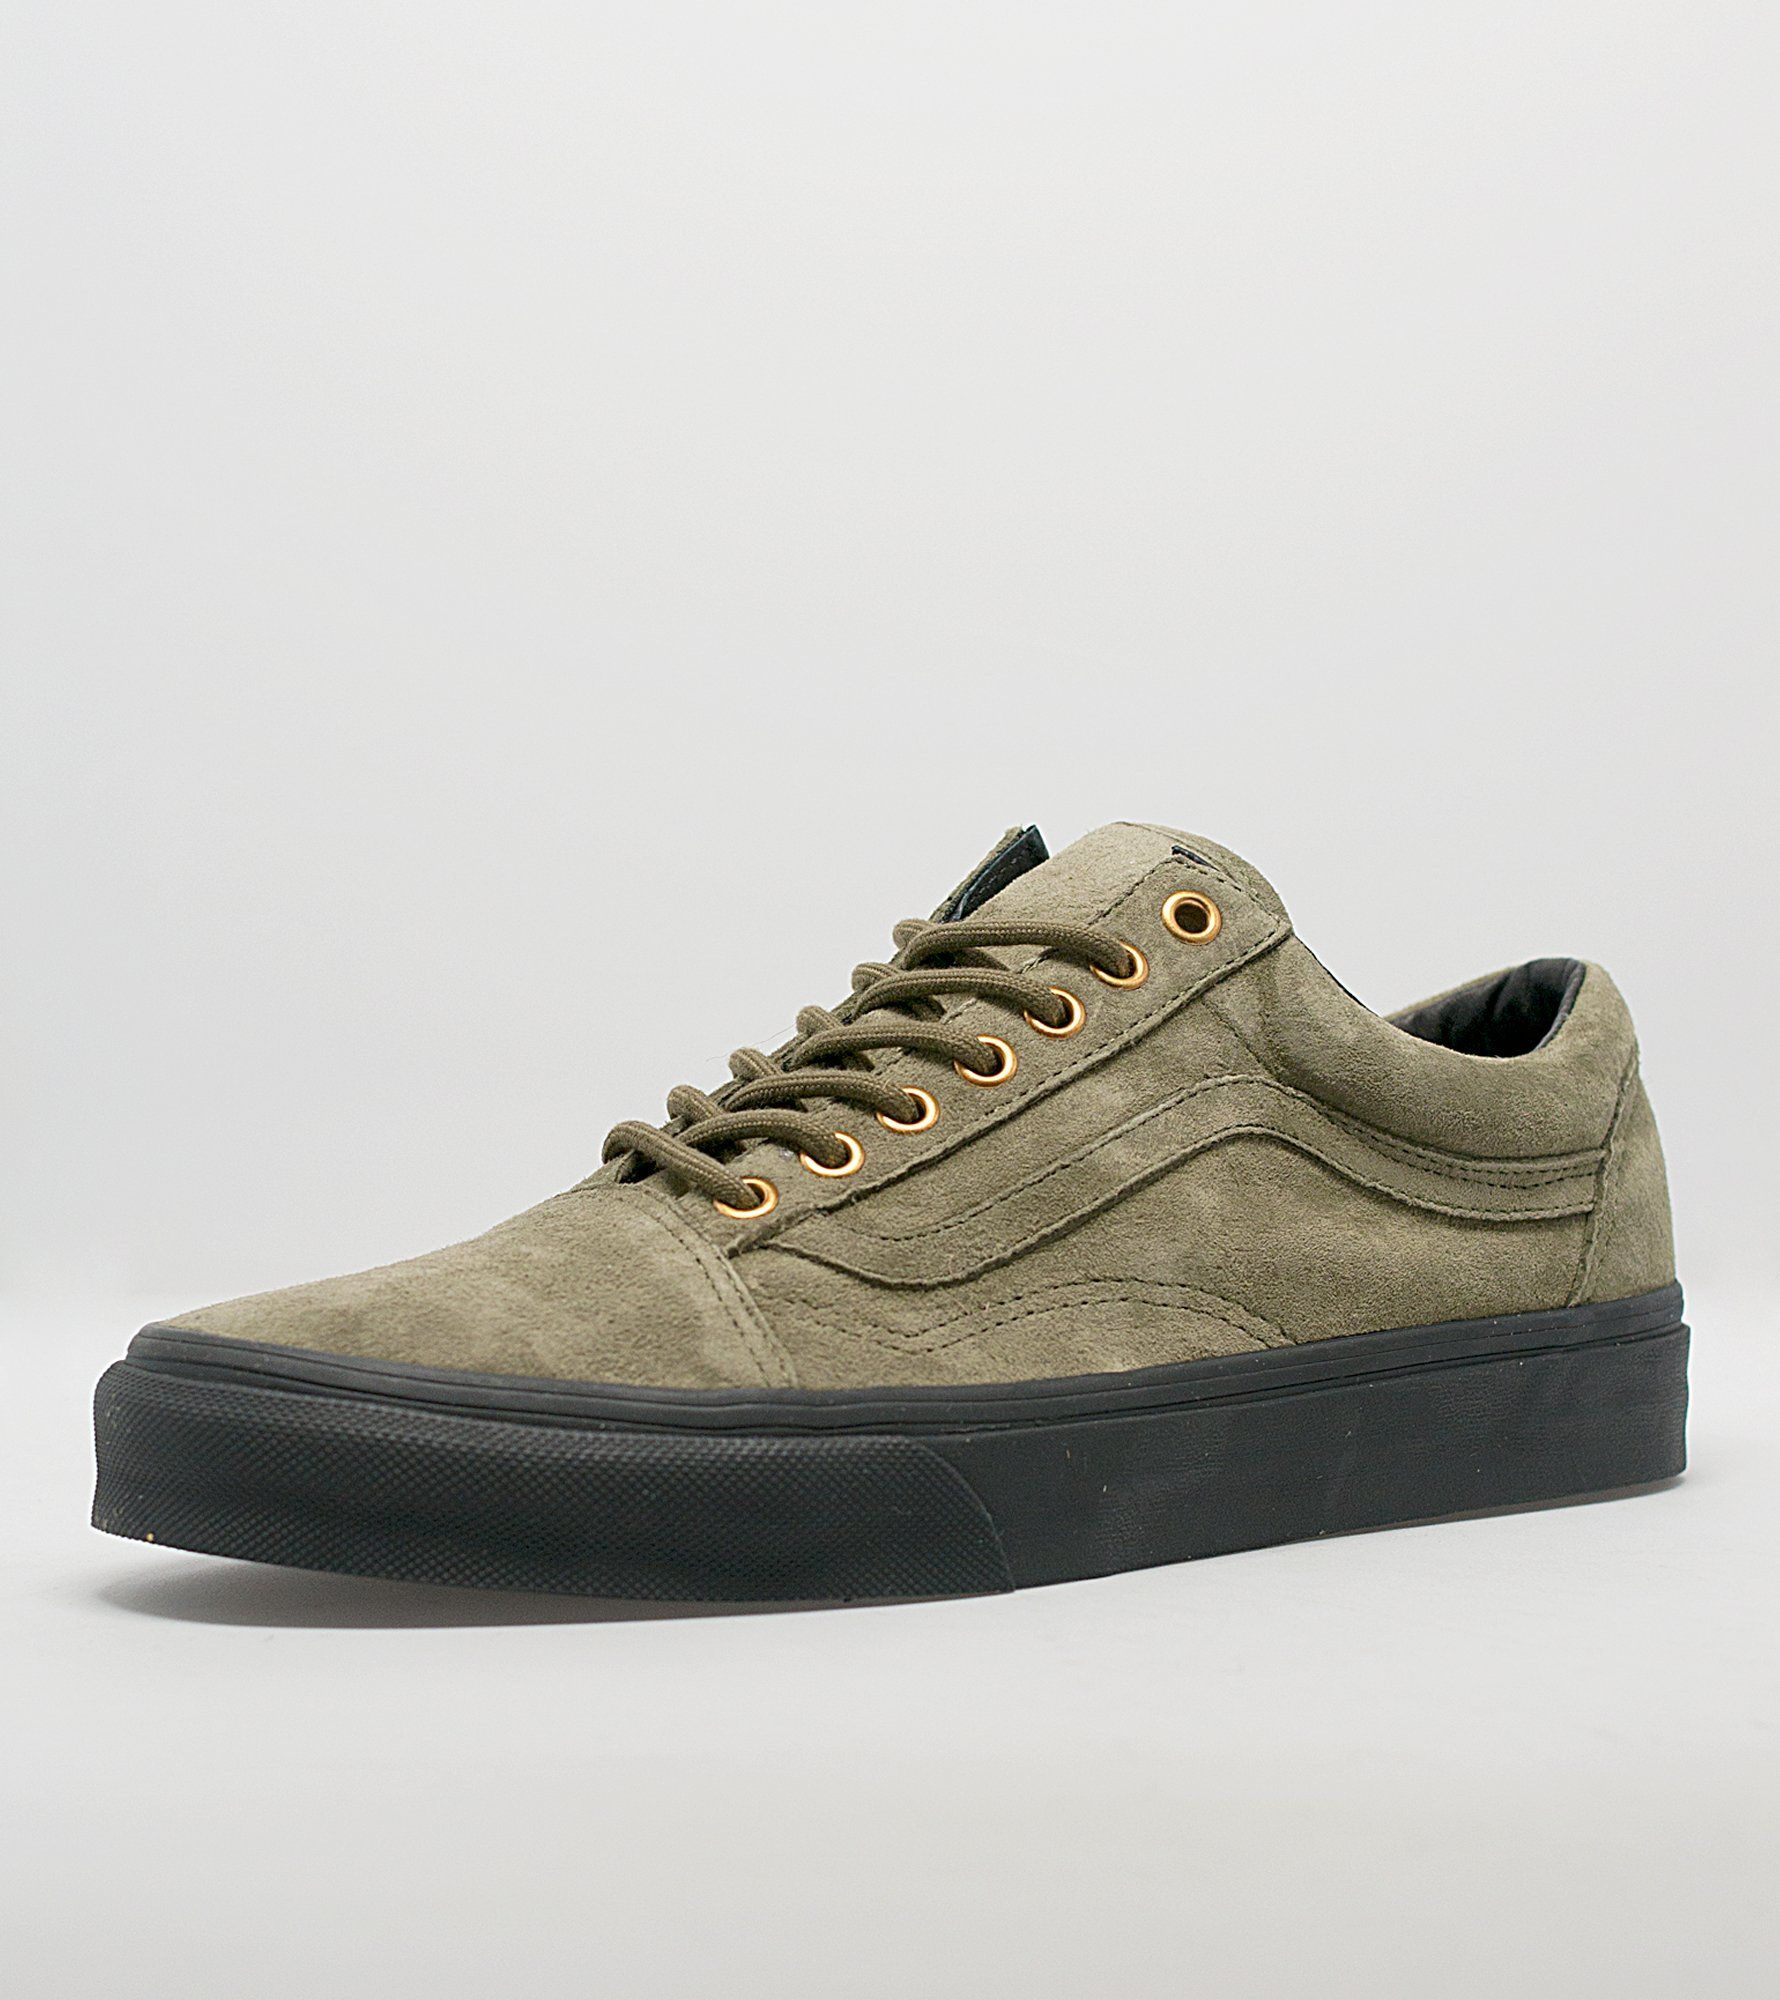 5cfd316c896fcc Vans Old Skool CA - size  Exclusive